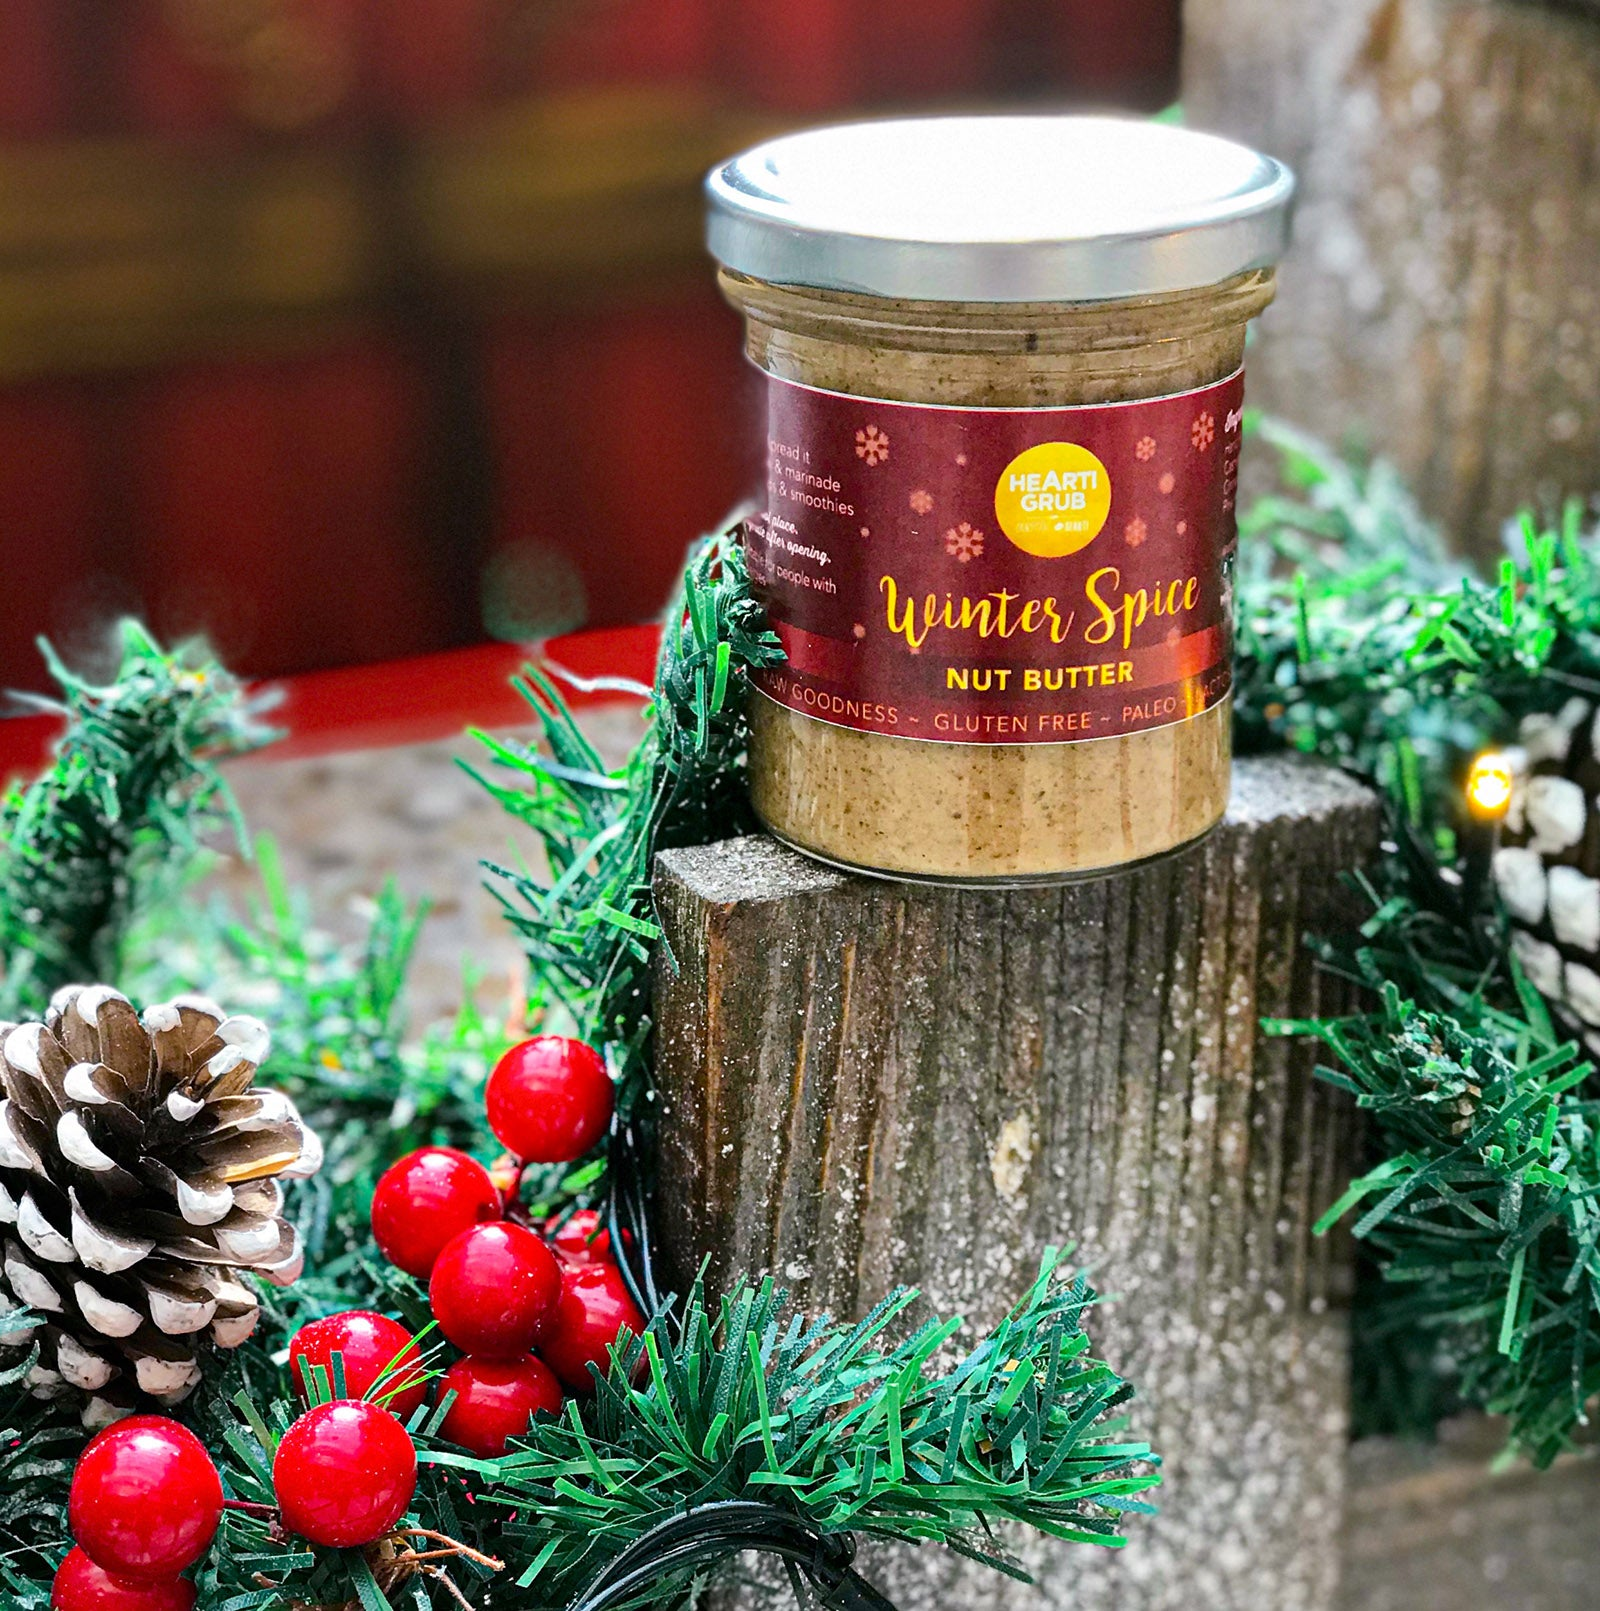 WINTER SPICE BUTTER